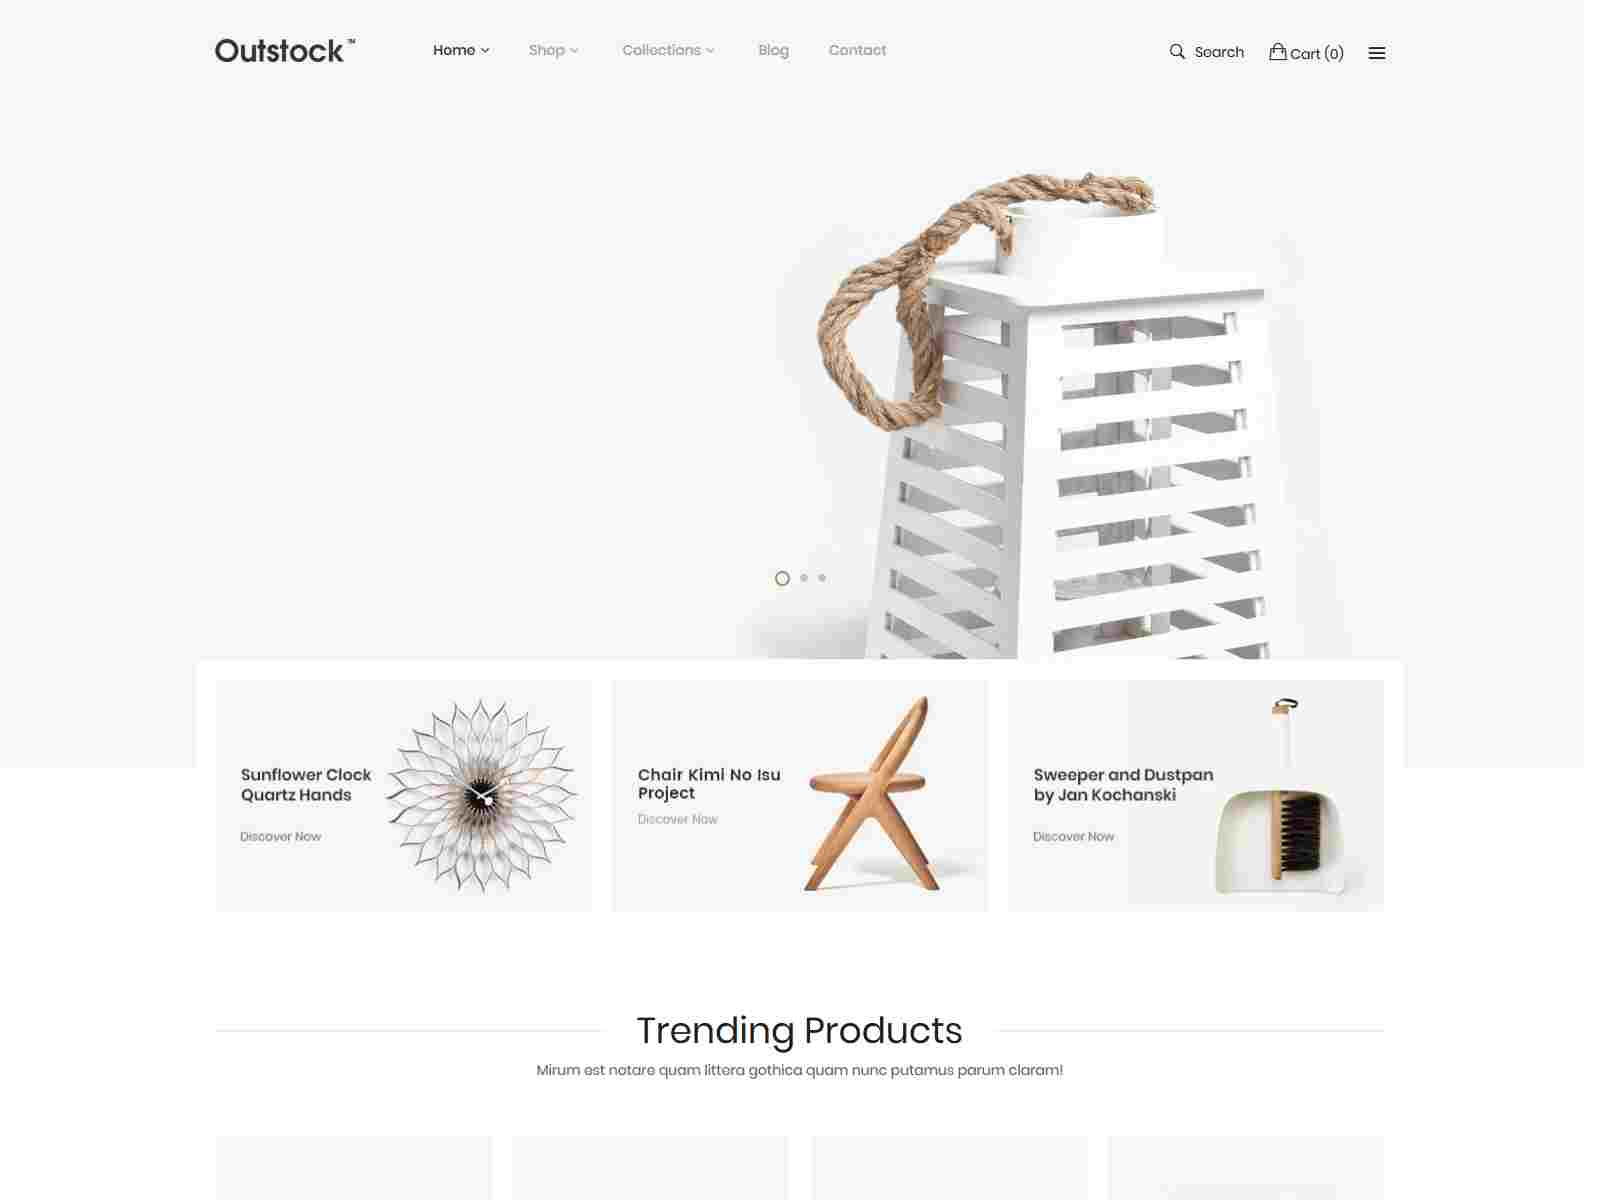 Shopify - Outstock Clean, Minimal , Drag and Drop